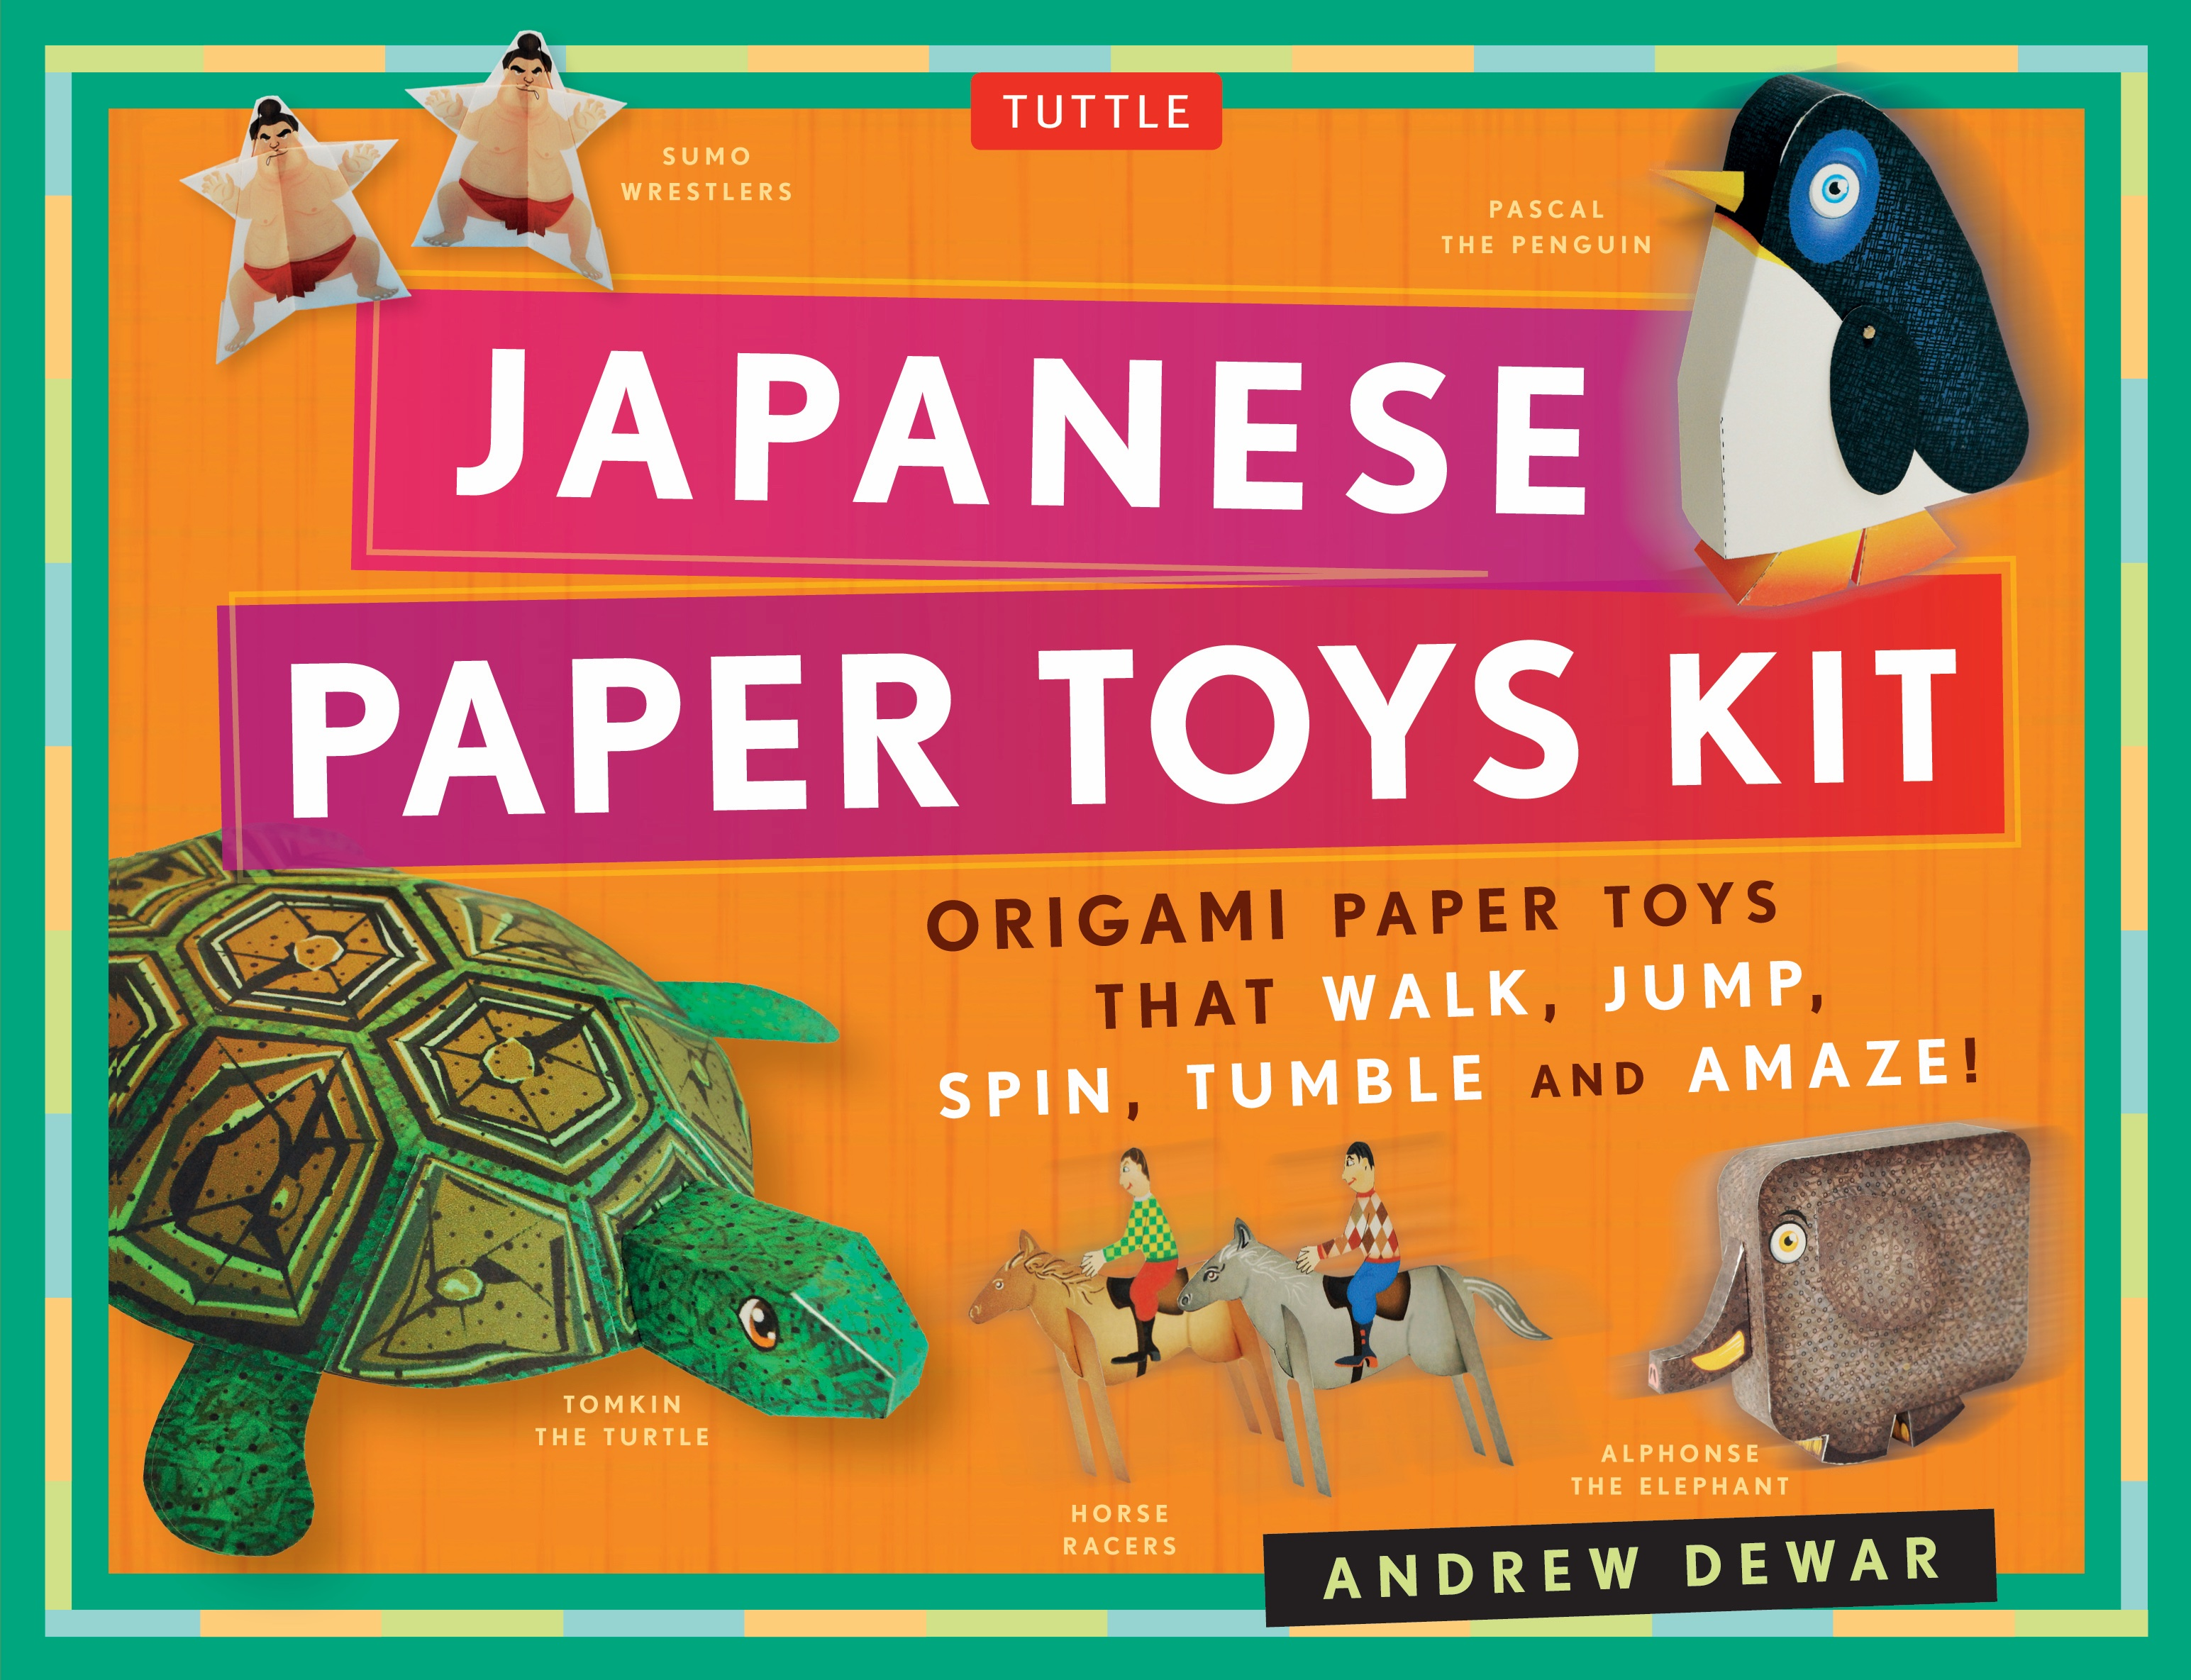 Imagine If Paper Toys Could Come Alive Thats Exactly What Happens With This Fascinating Collection Of Figures That Walk Jump Fly And Spin